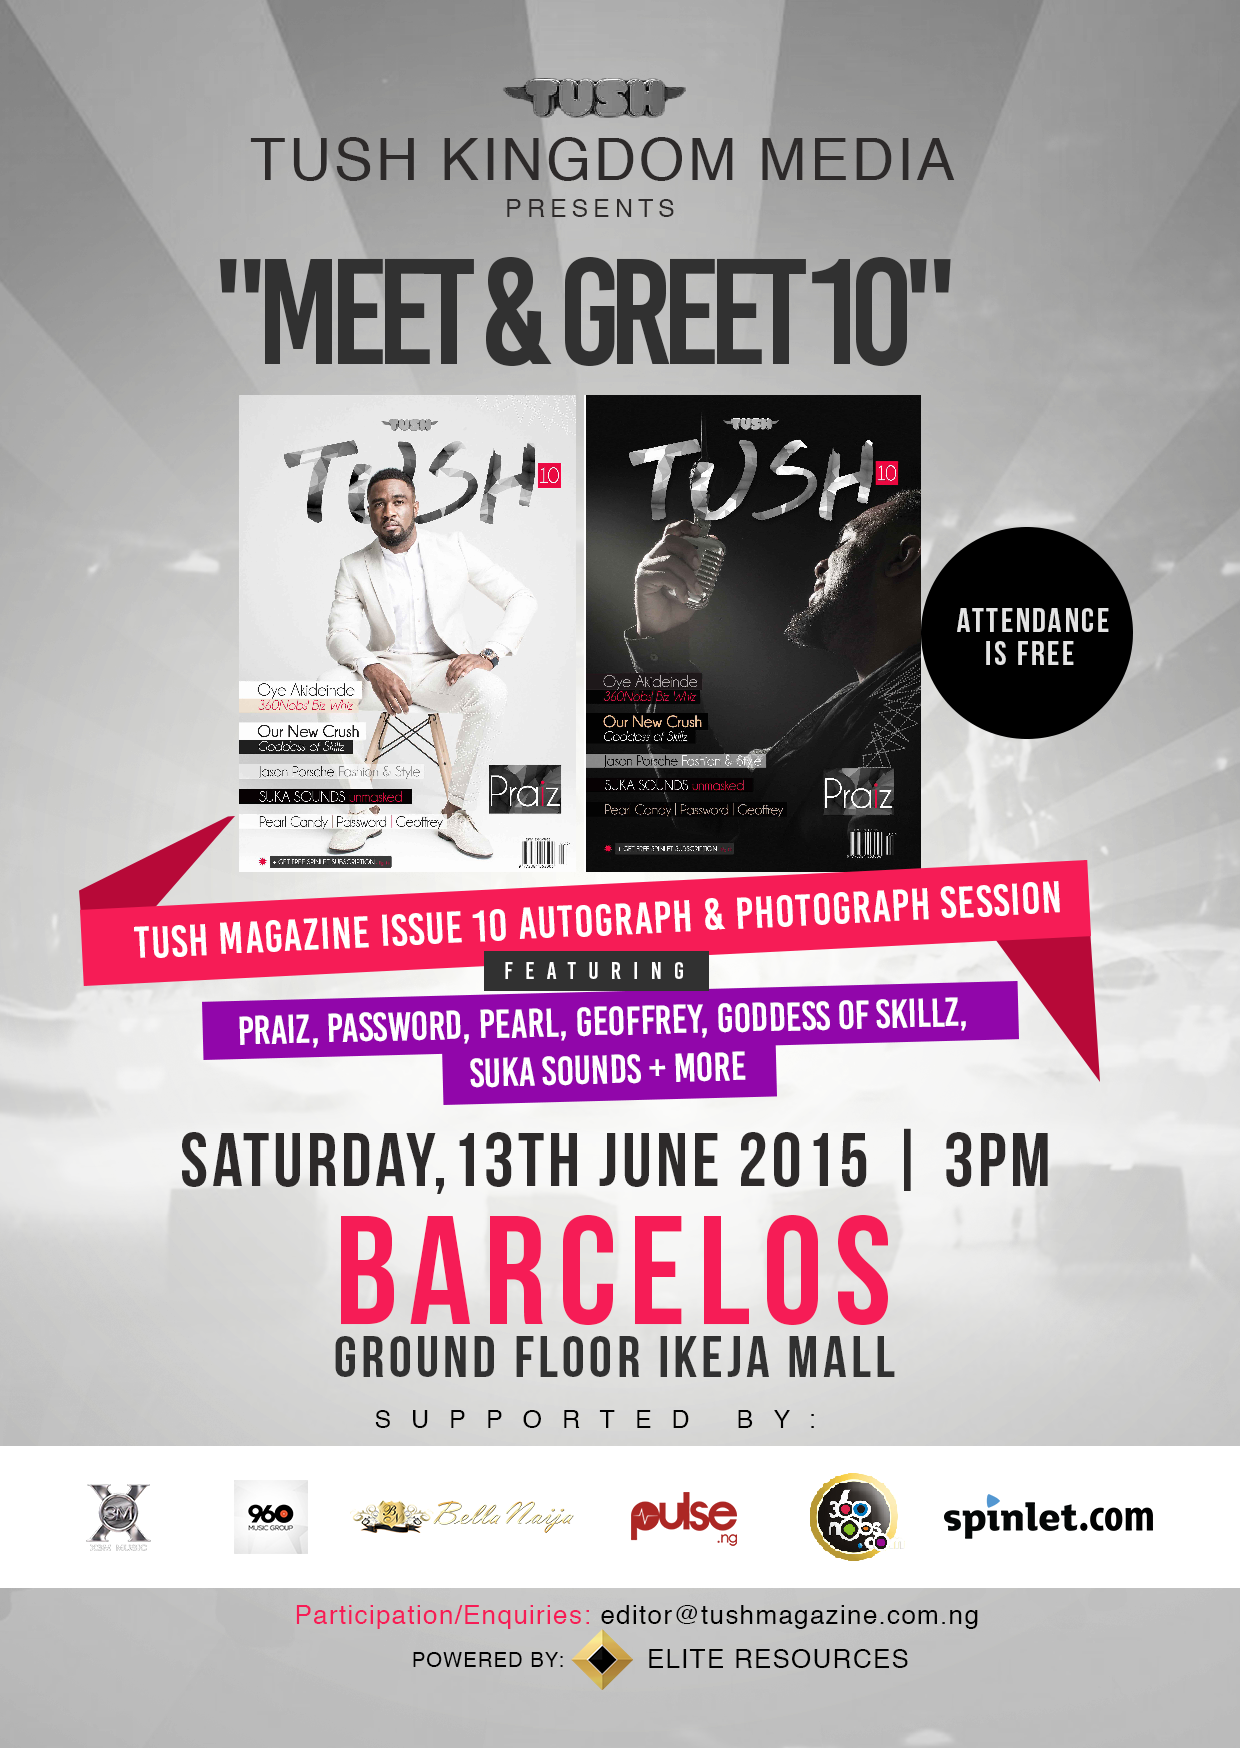 Tush Magazine Presents: Meet & Greet with Praiz, Suka Sounds, Goddess of Skills and others!